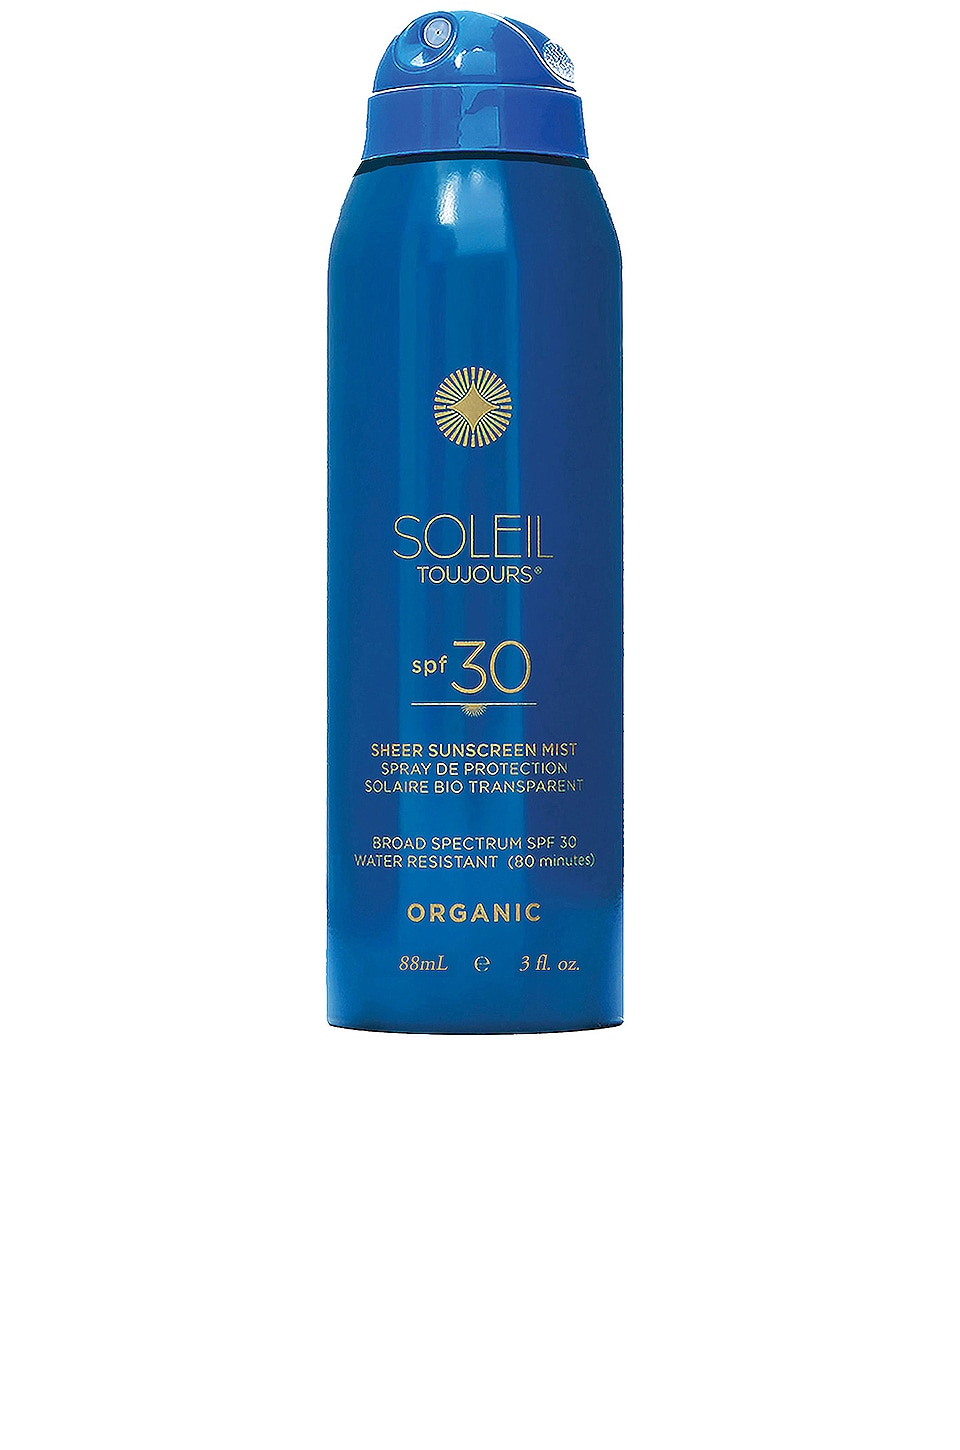 Soleil Toujours Travel Organic Sheer Sunscreen Mist SPF 30